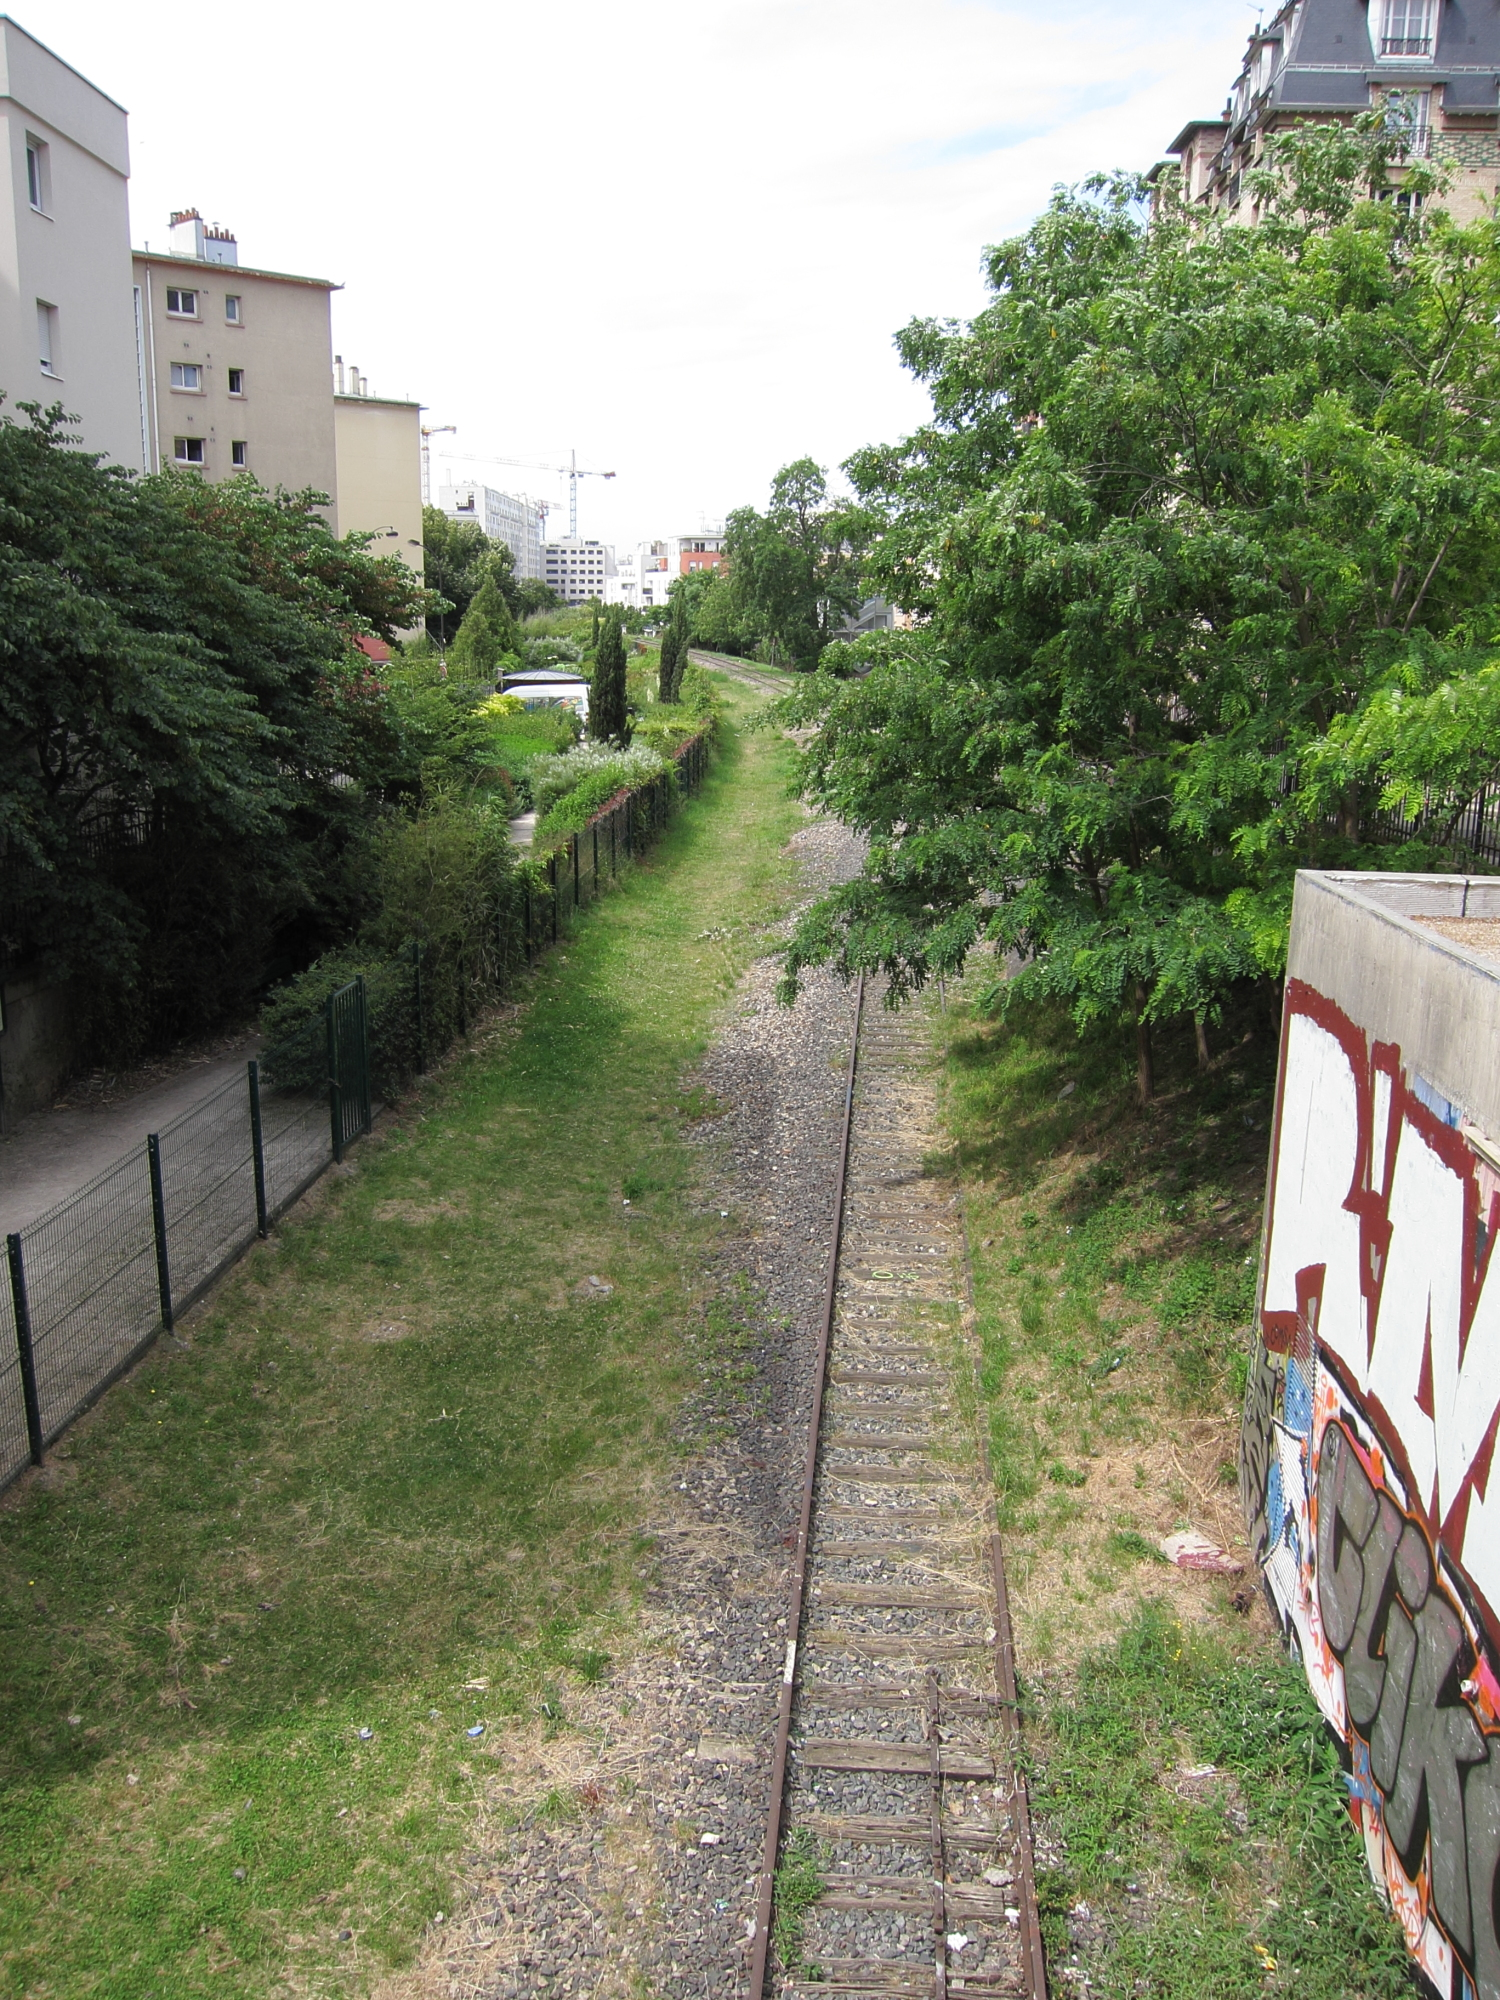 The Petite Ceinture, and abandoned railroad line that circles Paris.